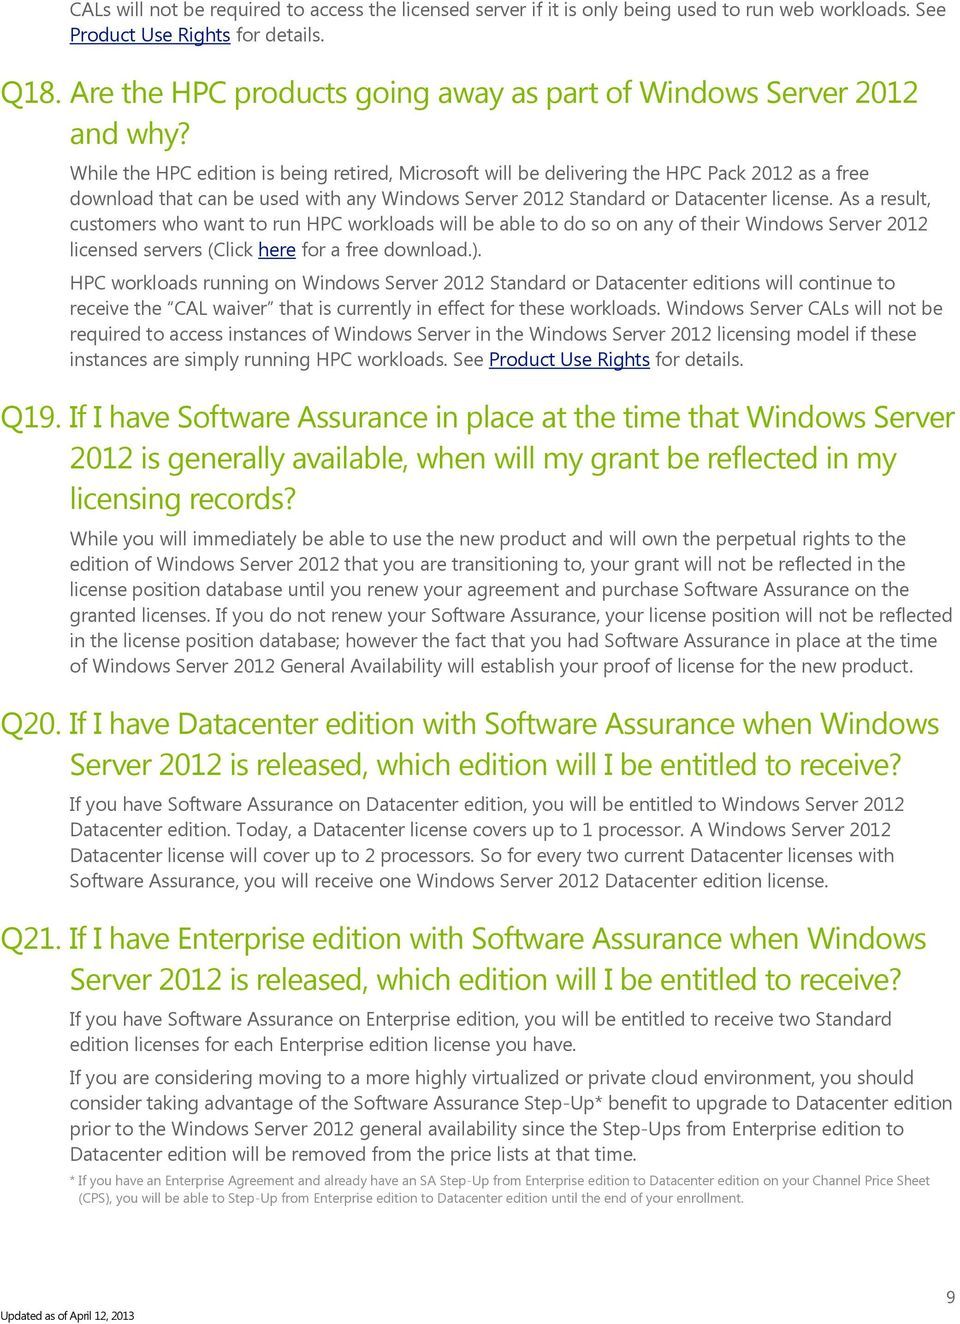 While the HPC edition is being retired, Microsoft will be delivering the HPC Pack 2012 as a free download that can be used with any Windows Server 2012 Standard or Datacenter license.